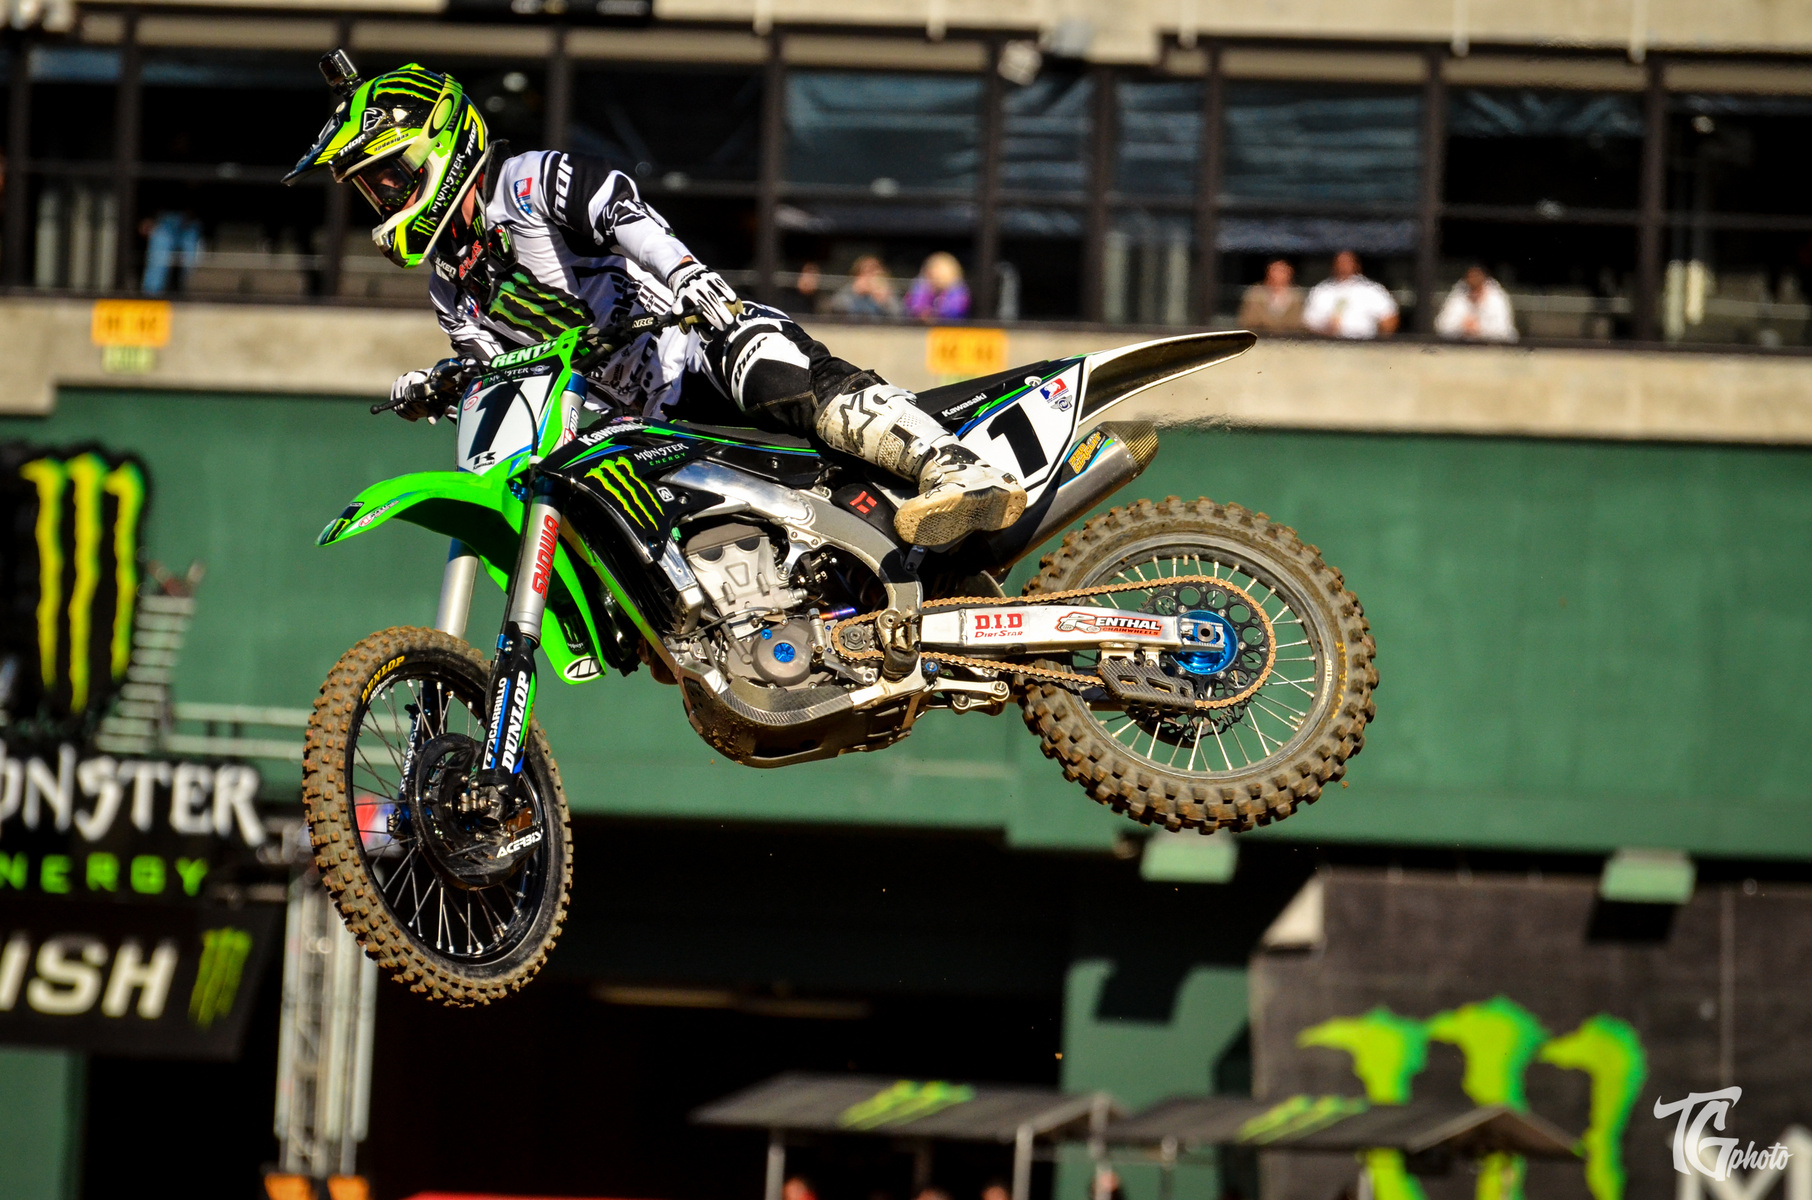 Cape Girardeau Honda >> MotoXAddicts | Title Fight Continues at Angel Stadium for ...